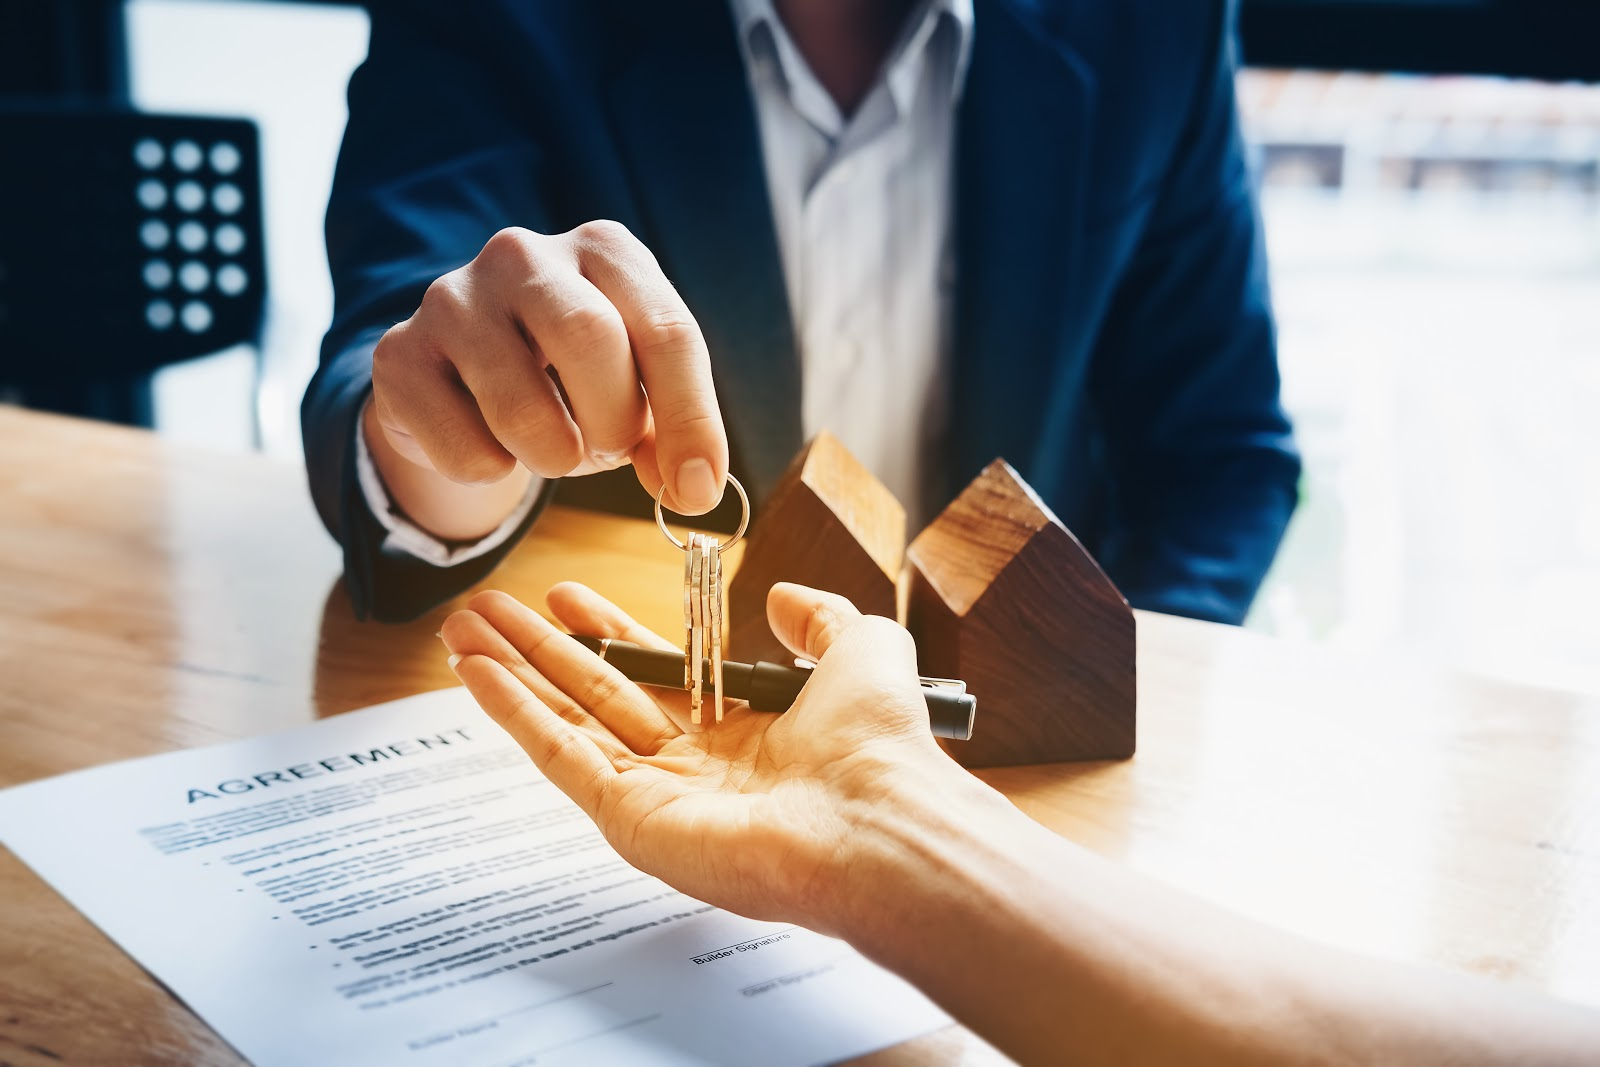 Key tips to keep your Virginia Real Estate license.